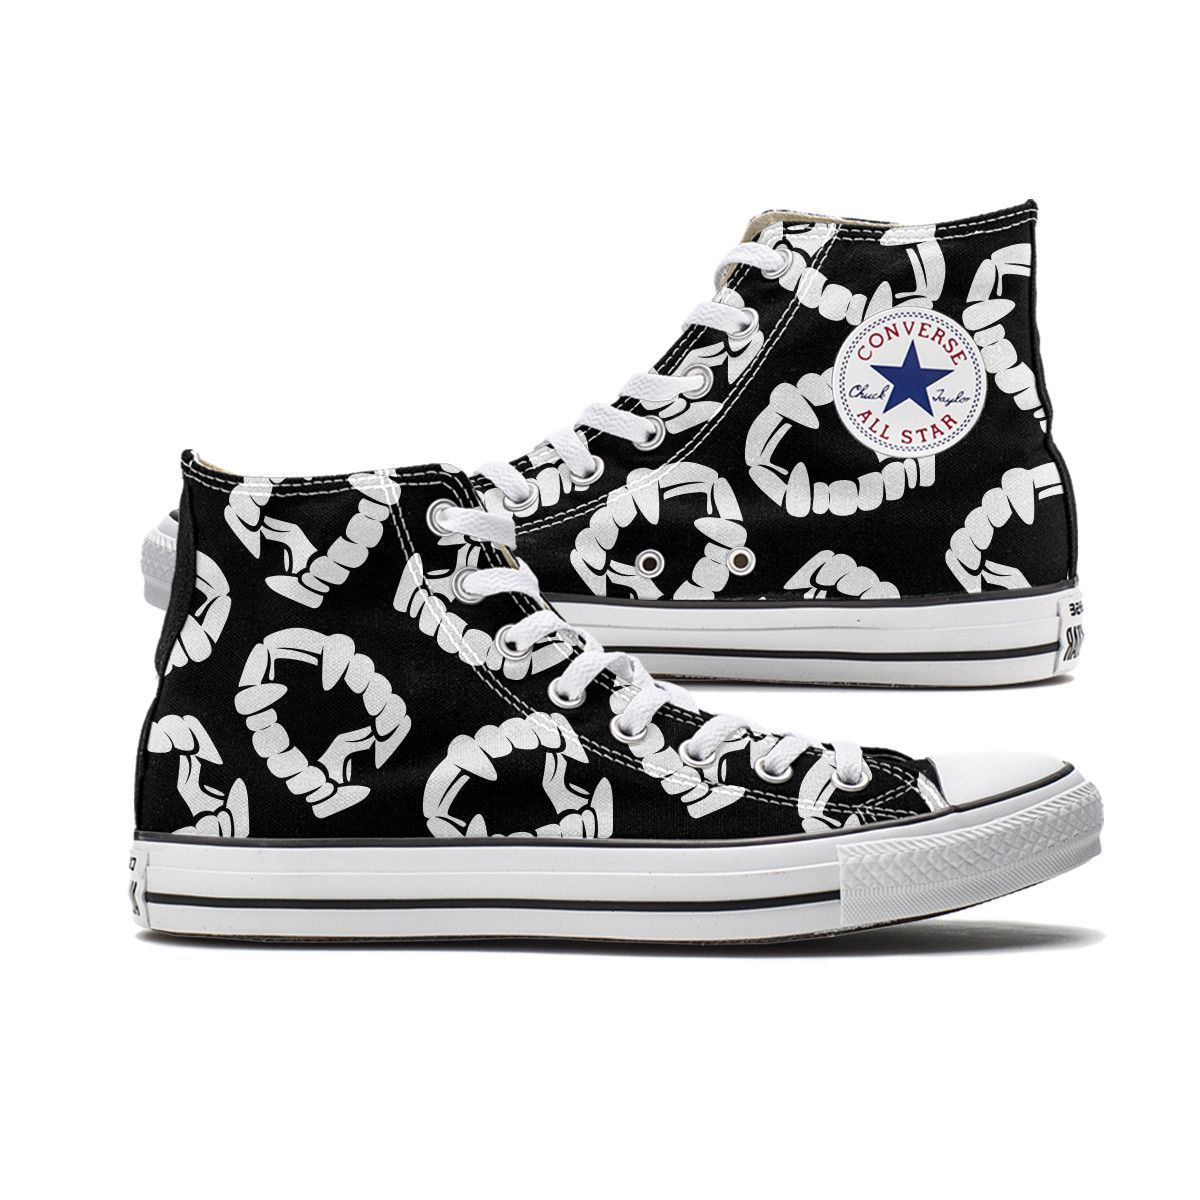 These Plastic Fangs Halloween Converse High Top chucks are